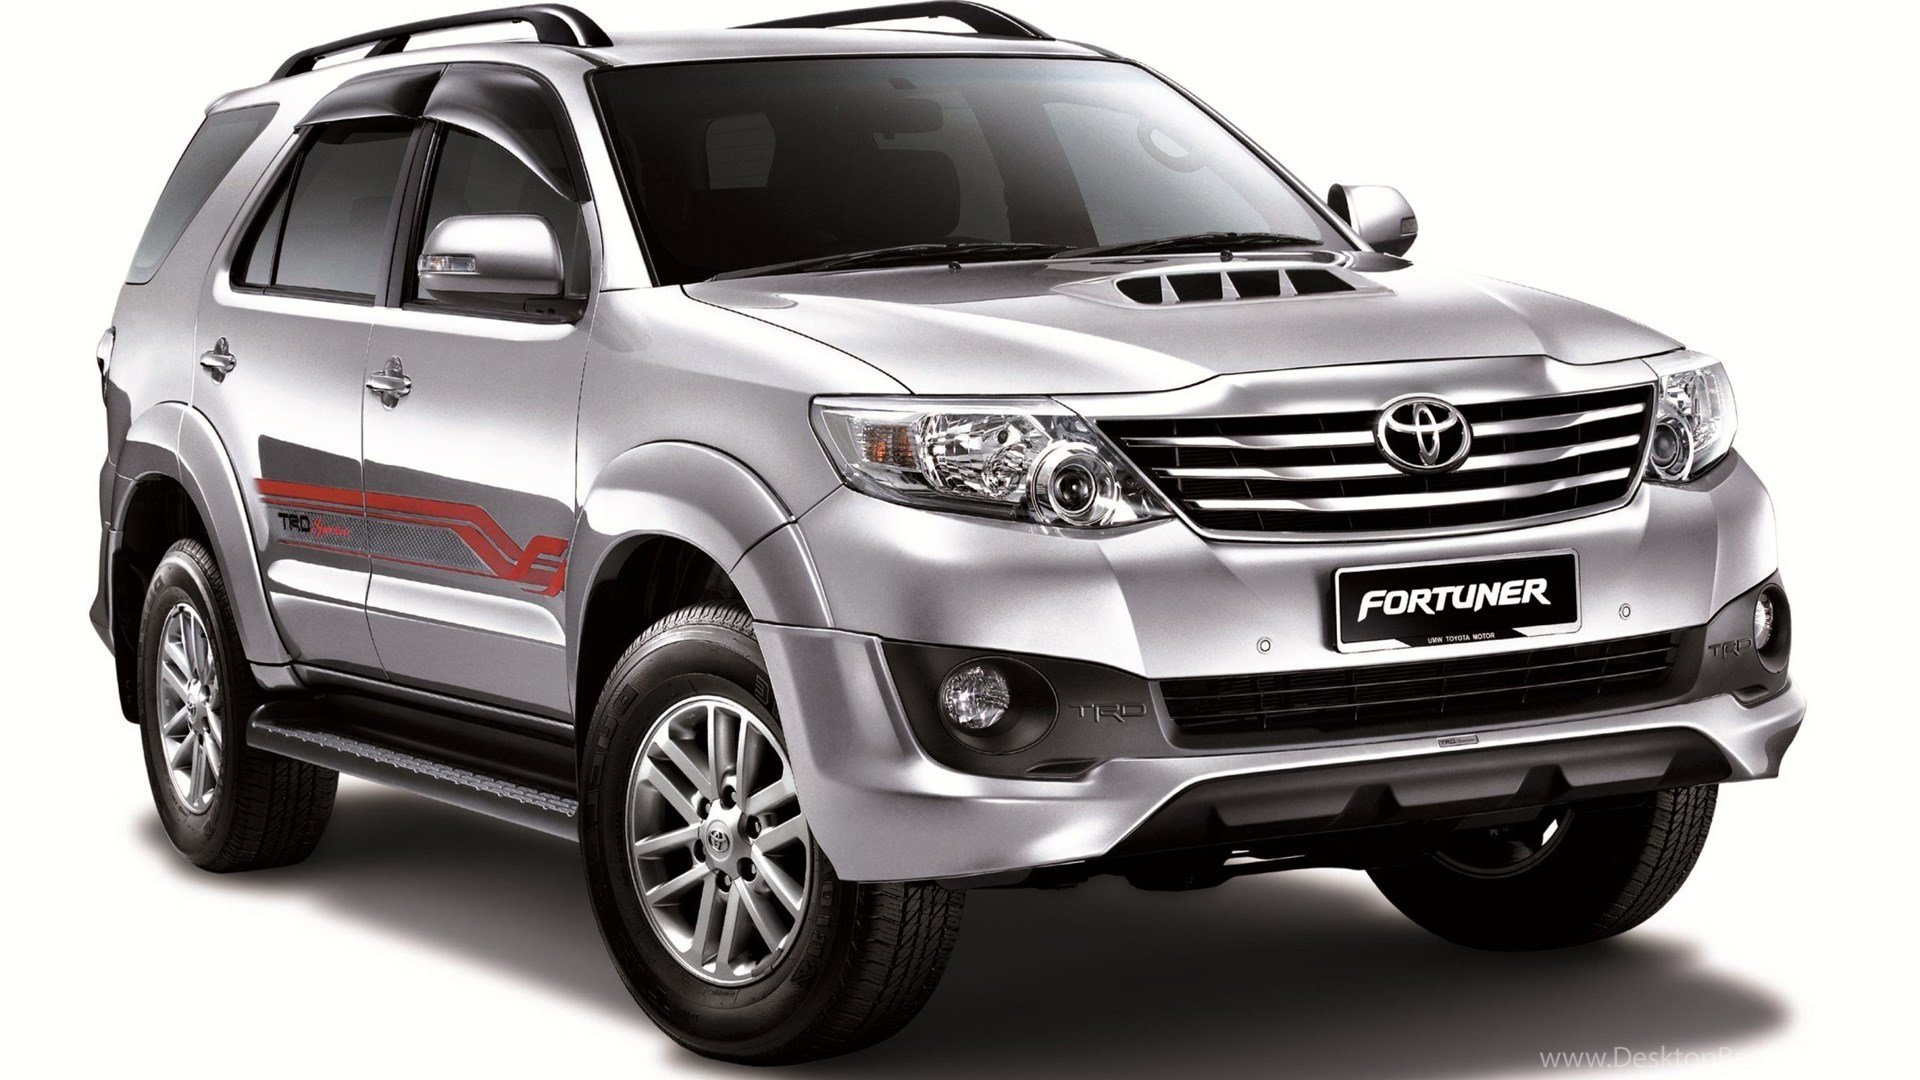 New Picture 2016 2015 Toyota Fortuner Hd Car Wallpapers Cars On This Month